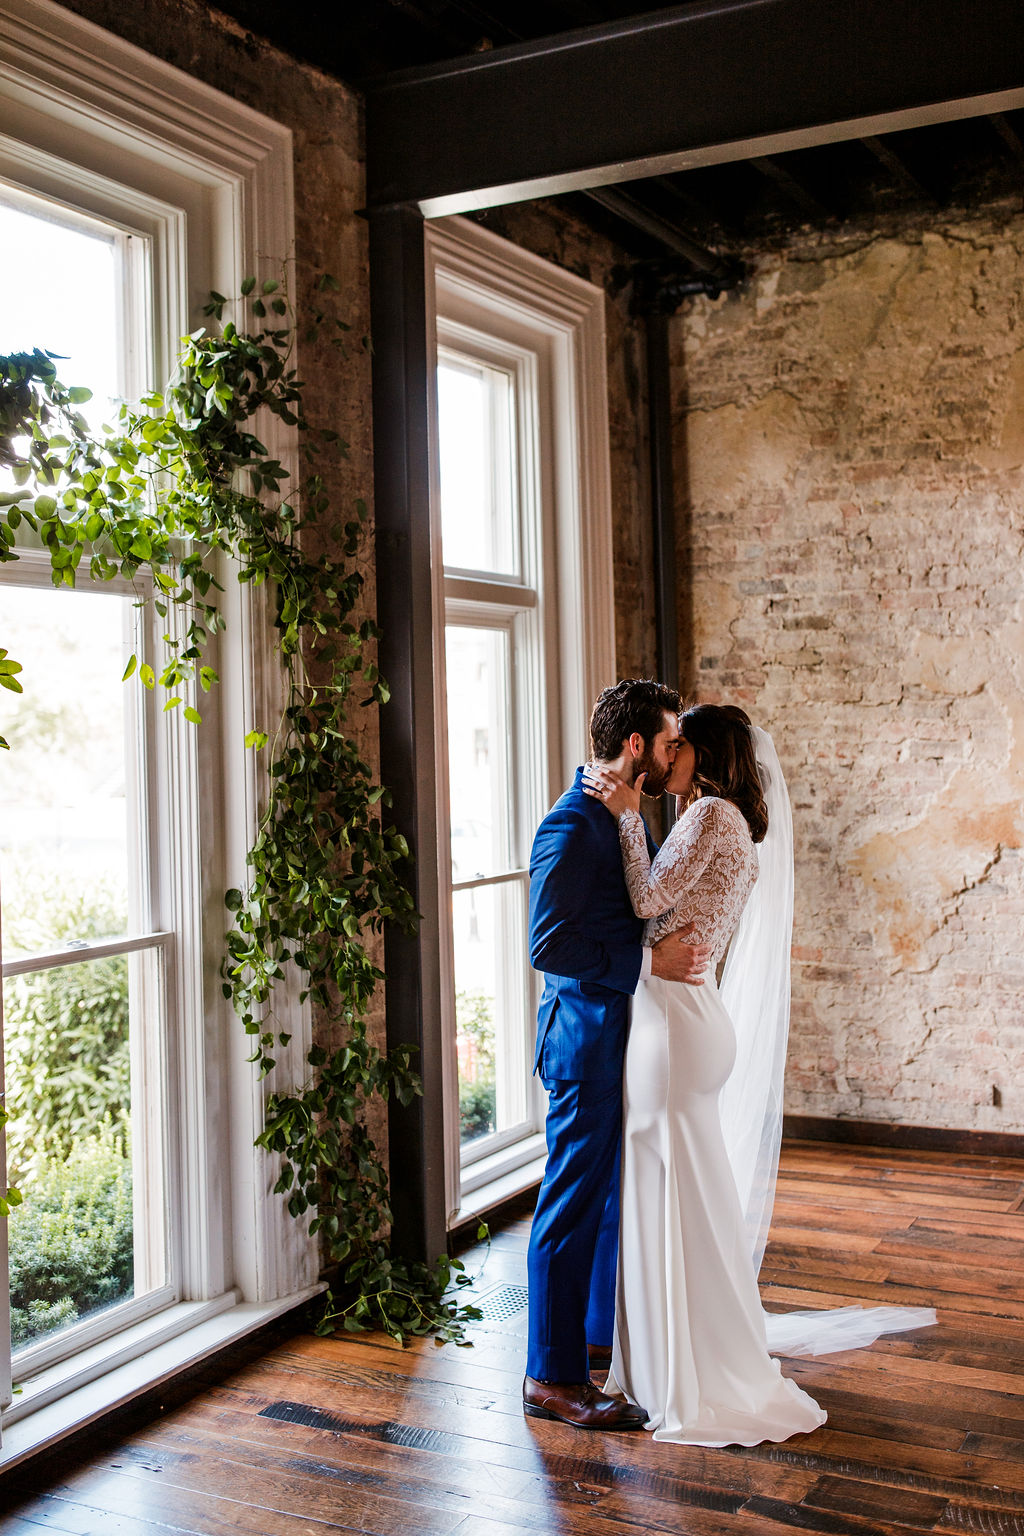 Vine-like greenery arch installation for the ceremony backdrop // Southern US Wedding Floral Designer